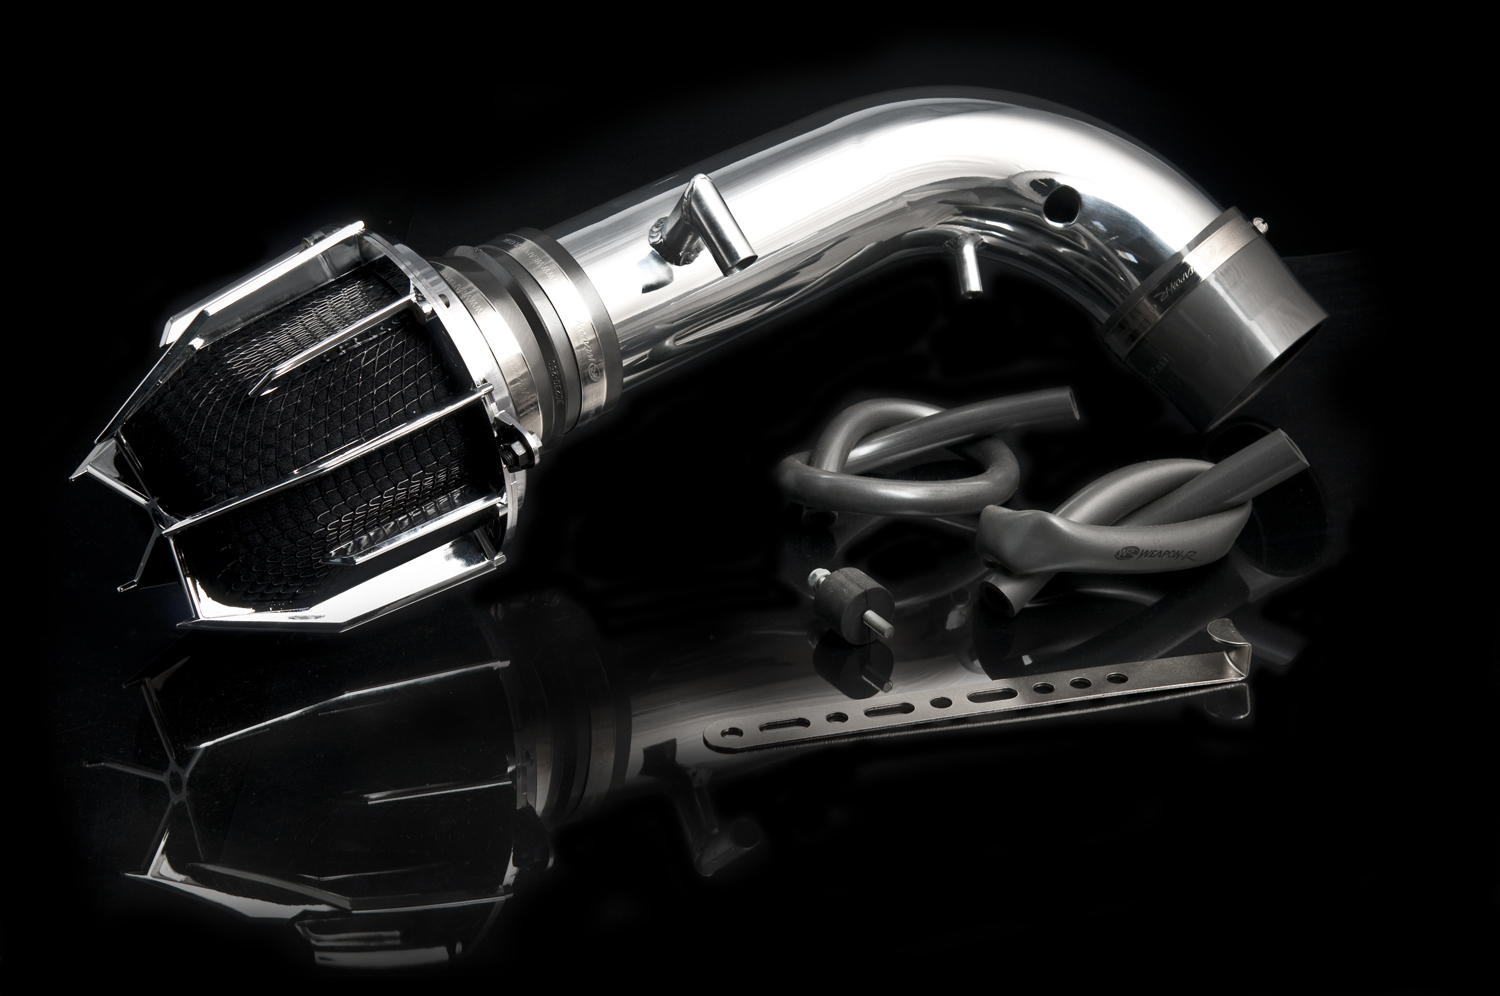 Acura RSX Non Type-S 2002-2005 Weapon-R Dragon Air Intake